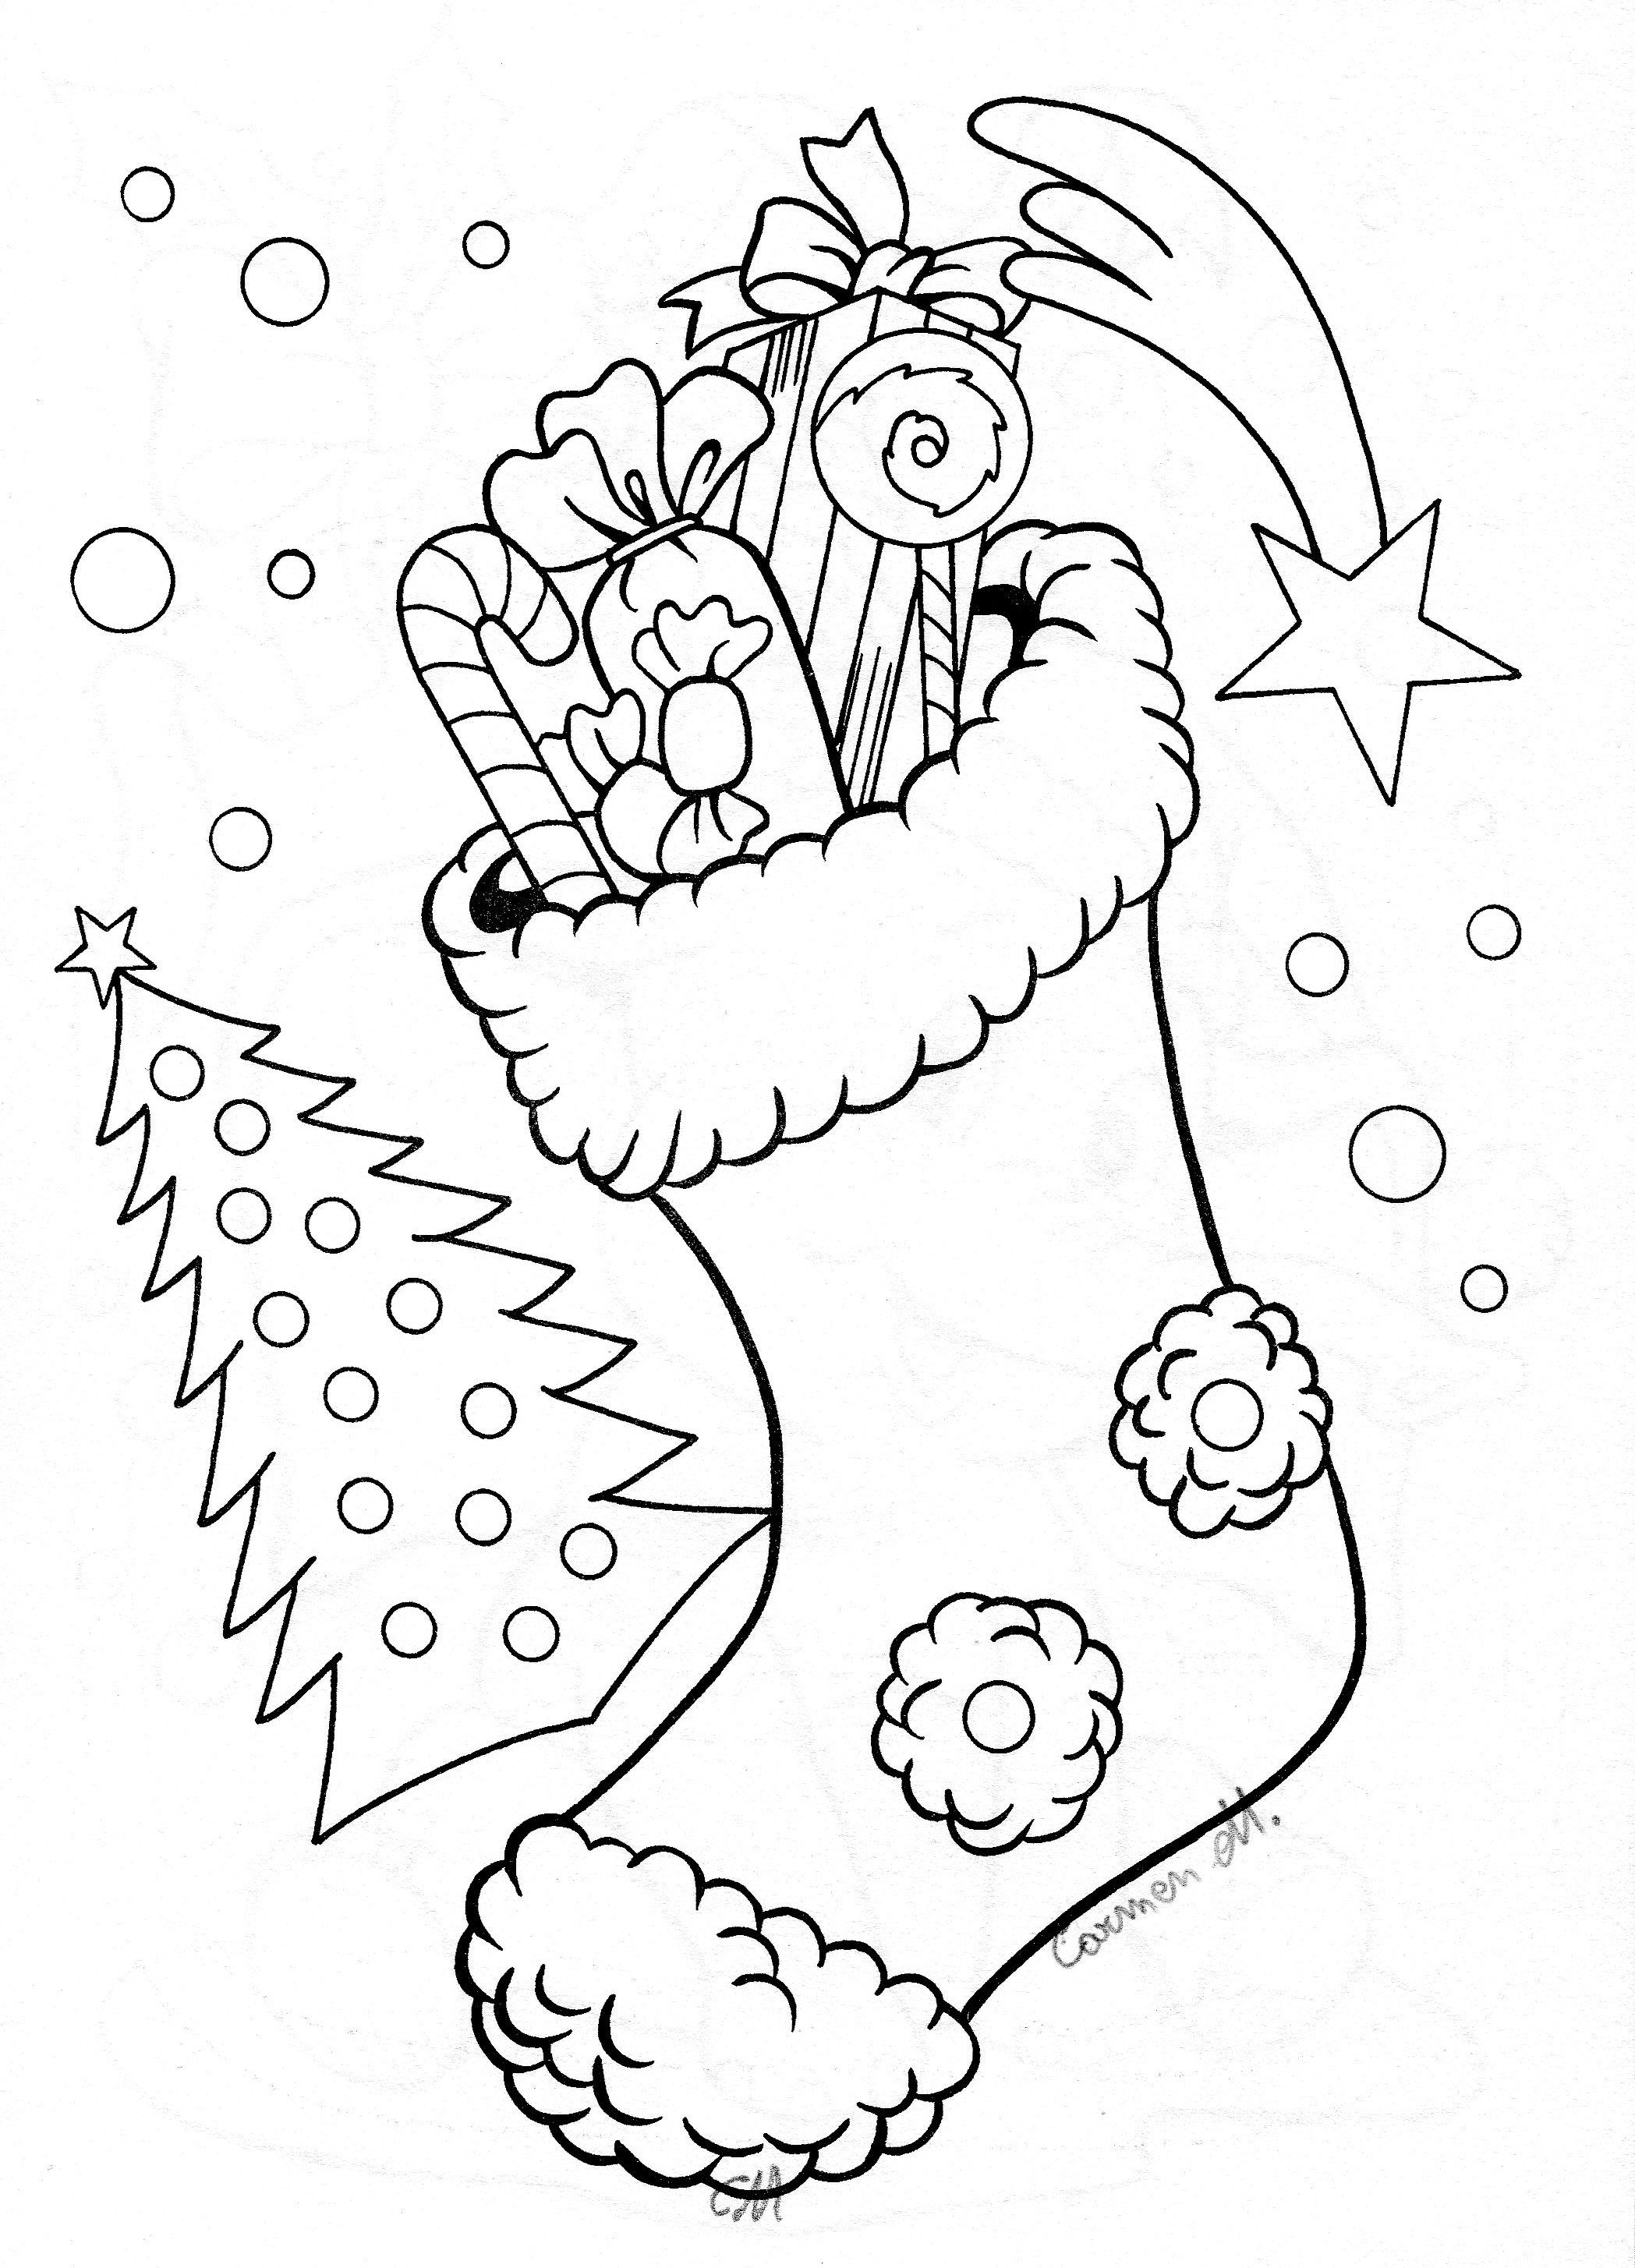 Christmas Sock Coloring Books Coloring Pages Clipart Black And White